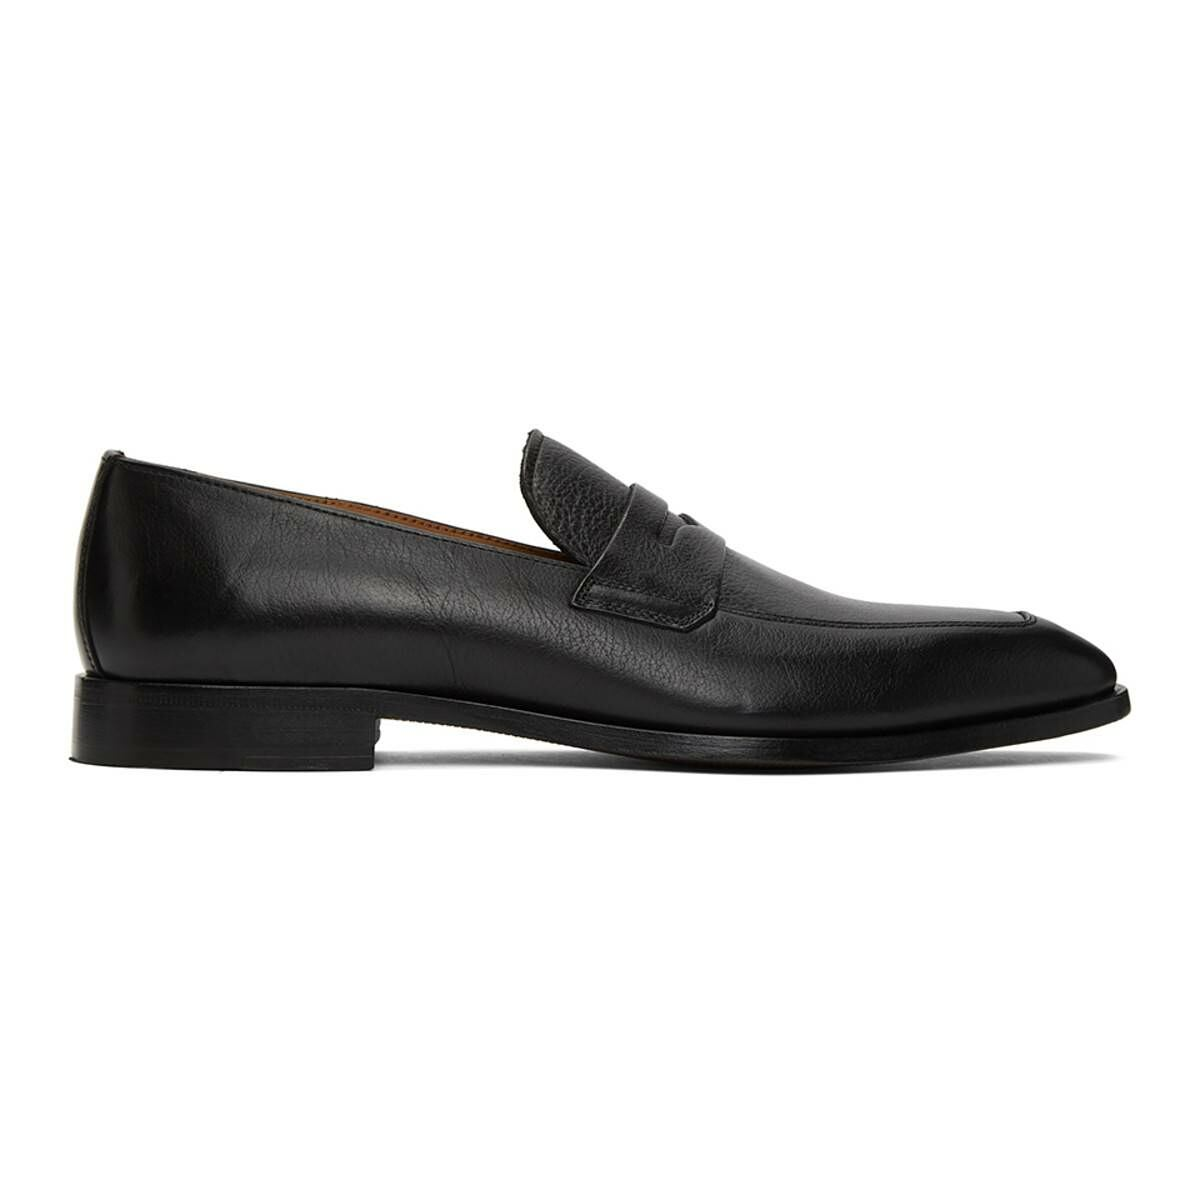 Boss Black Lisbon Loafer Ssense USA MEN Men SHOES Mens LOAFERS